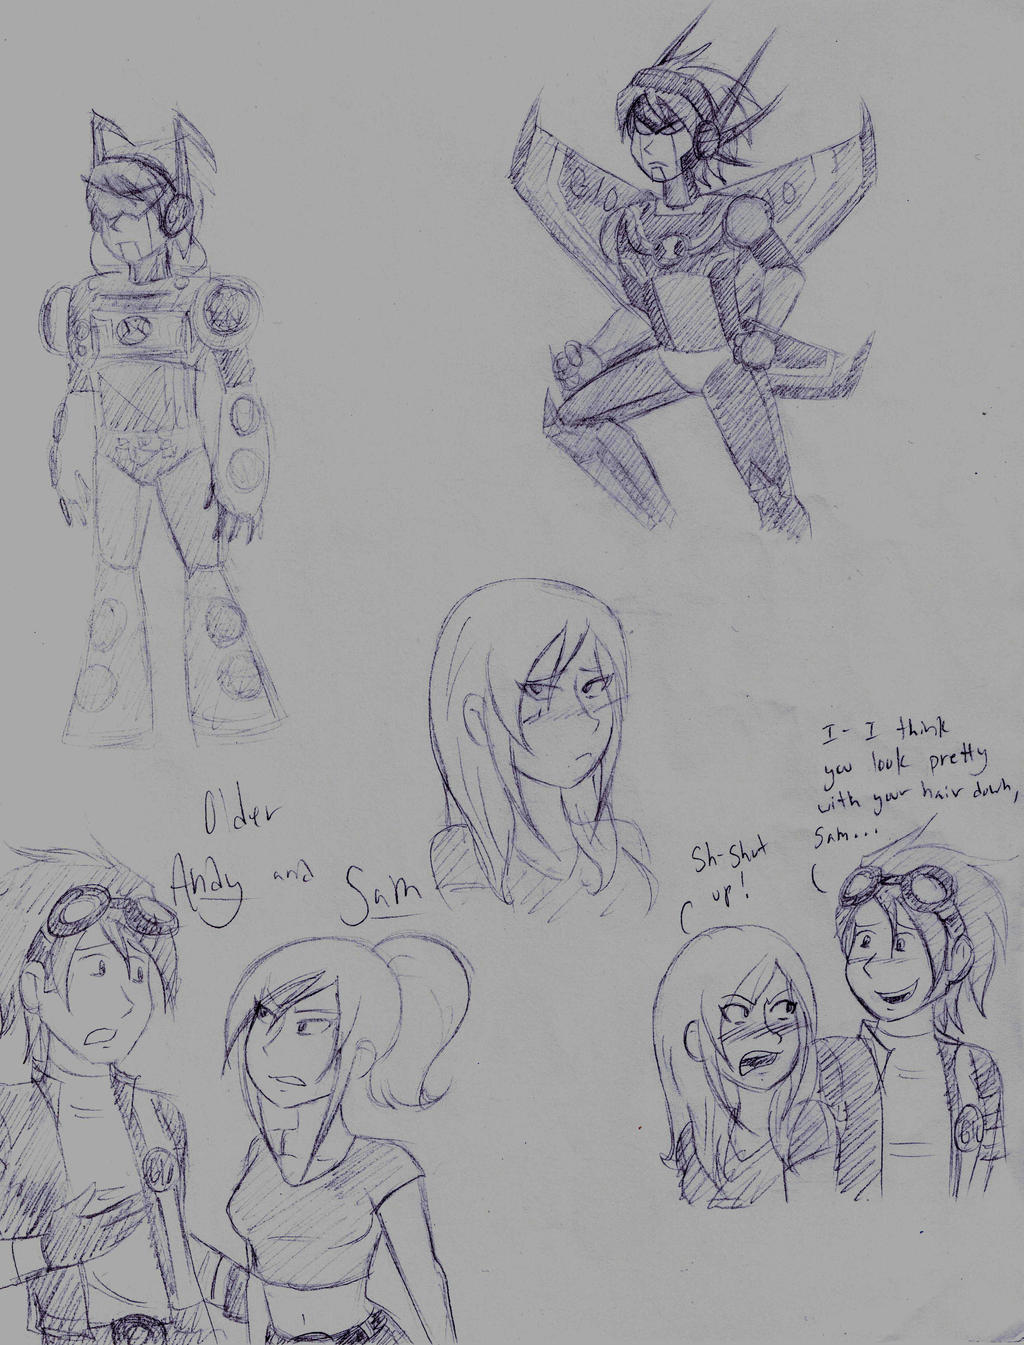 Andy and Sam doodles by dreamer45